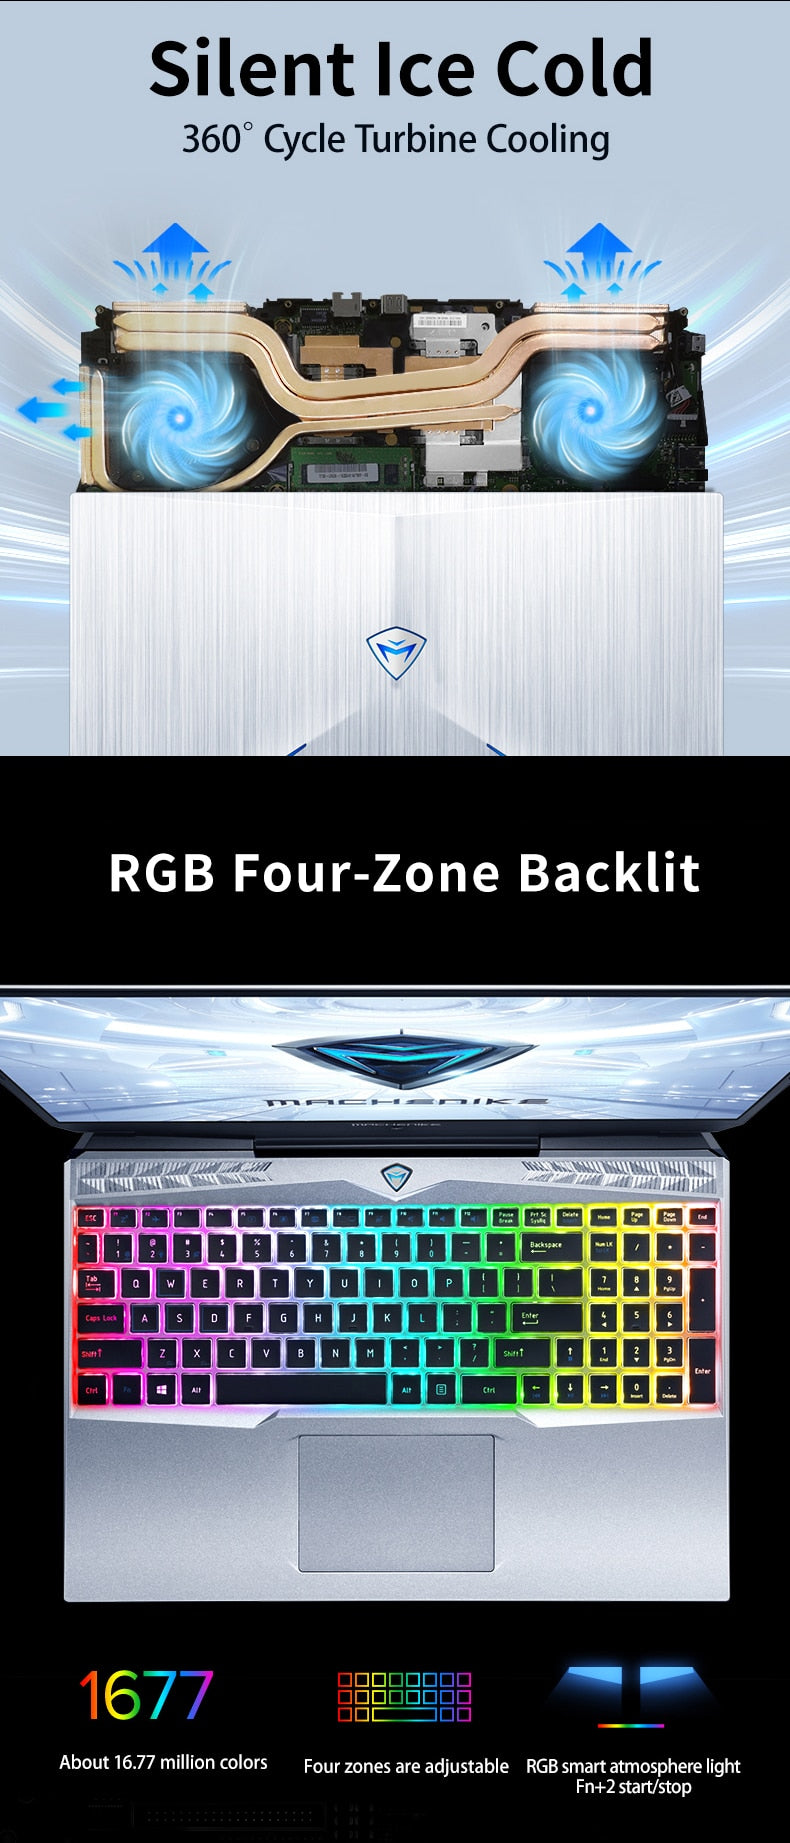 "Machenike F117 VD 15.6"" RTX 2060 Gaming Laptop 2020 i7 10750H IPS 144hz 8GB 512SSD 72% NTSC Laptops Notebook RGB Keyboard"